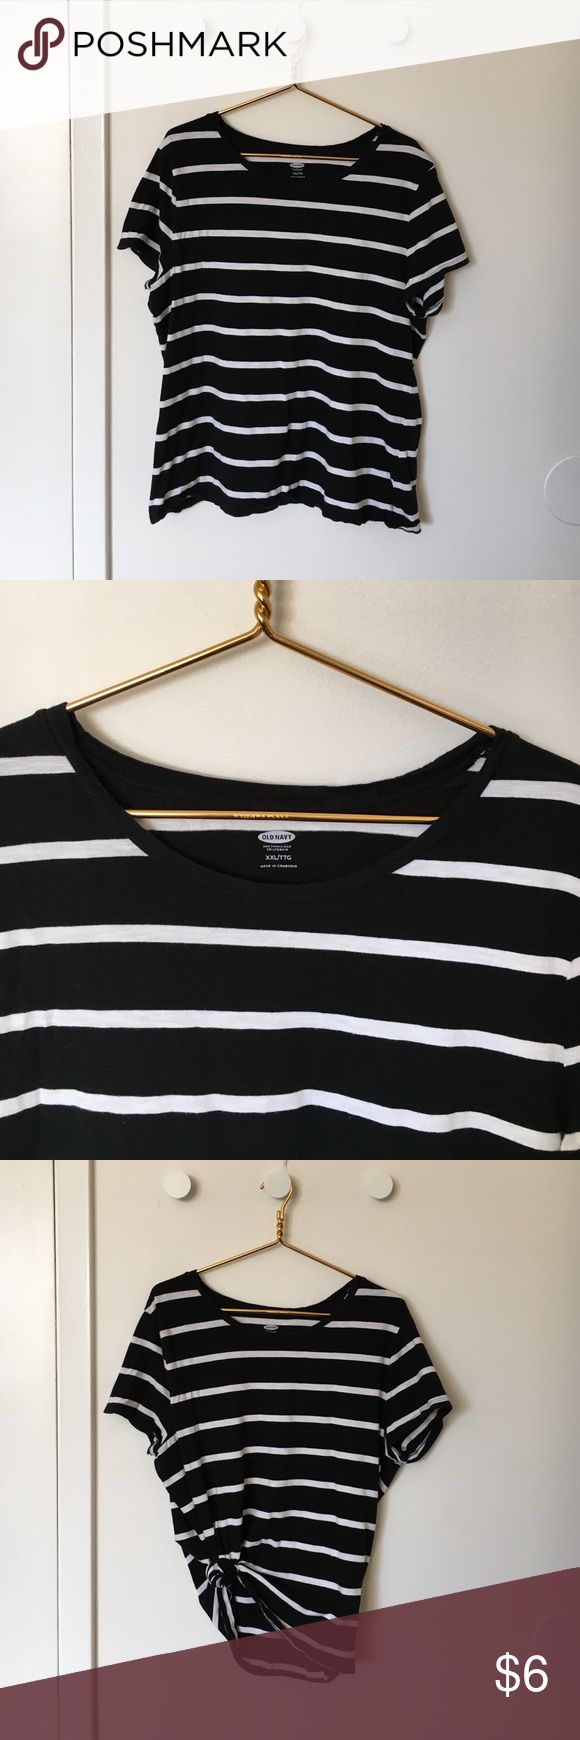 Striped old navy tee Black and white striped cotton T-shirt. Worn as an oversized T-shirt. Super comfy and cute tied up to the side. Old Navy Tops Tees - Short Sleeve